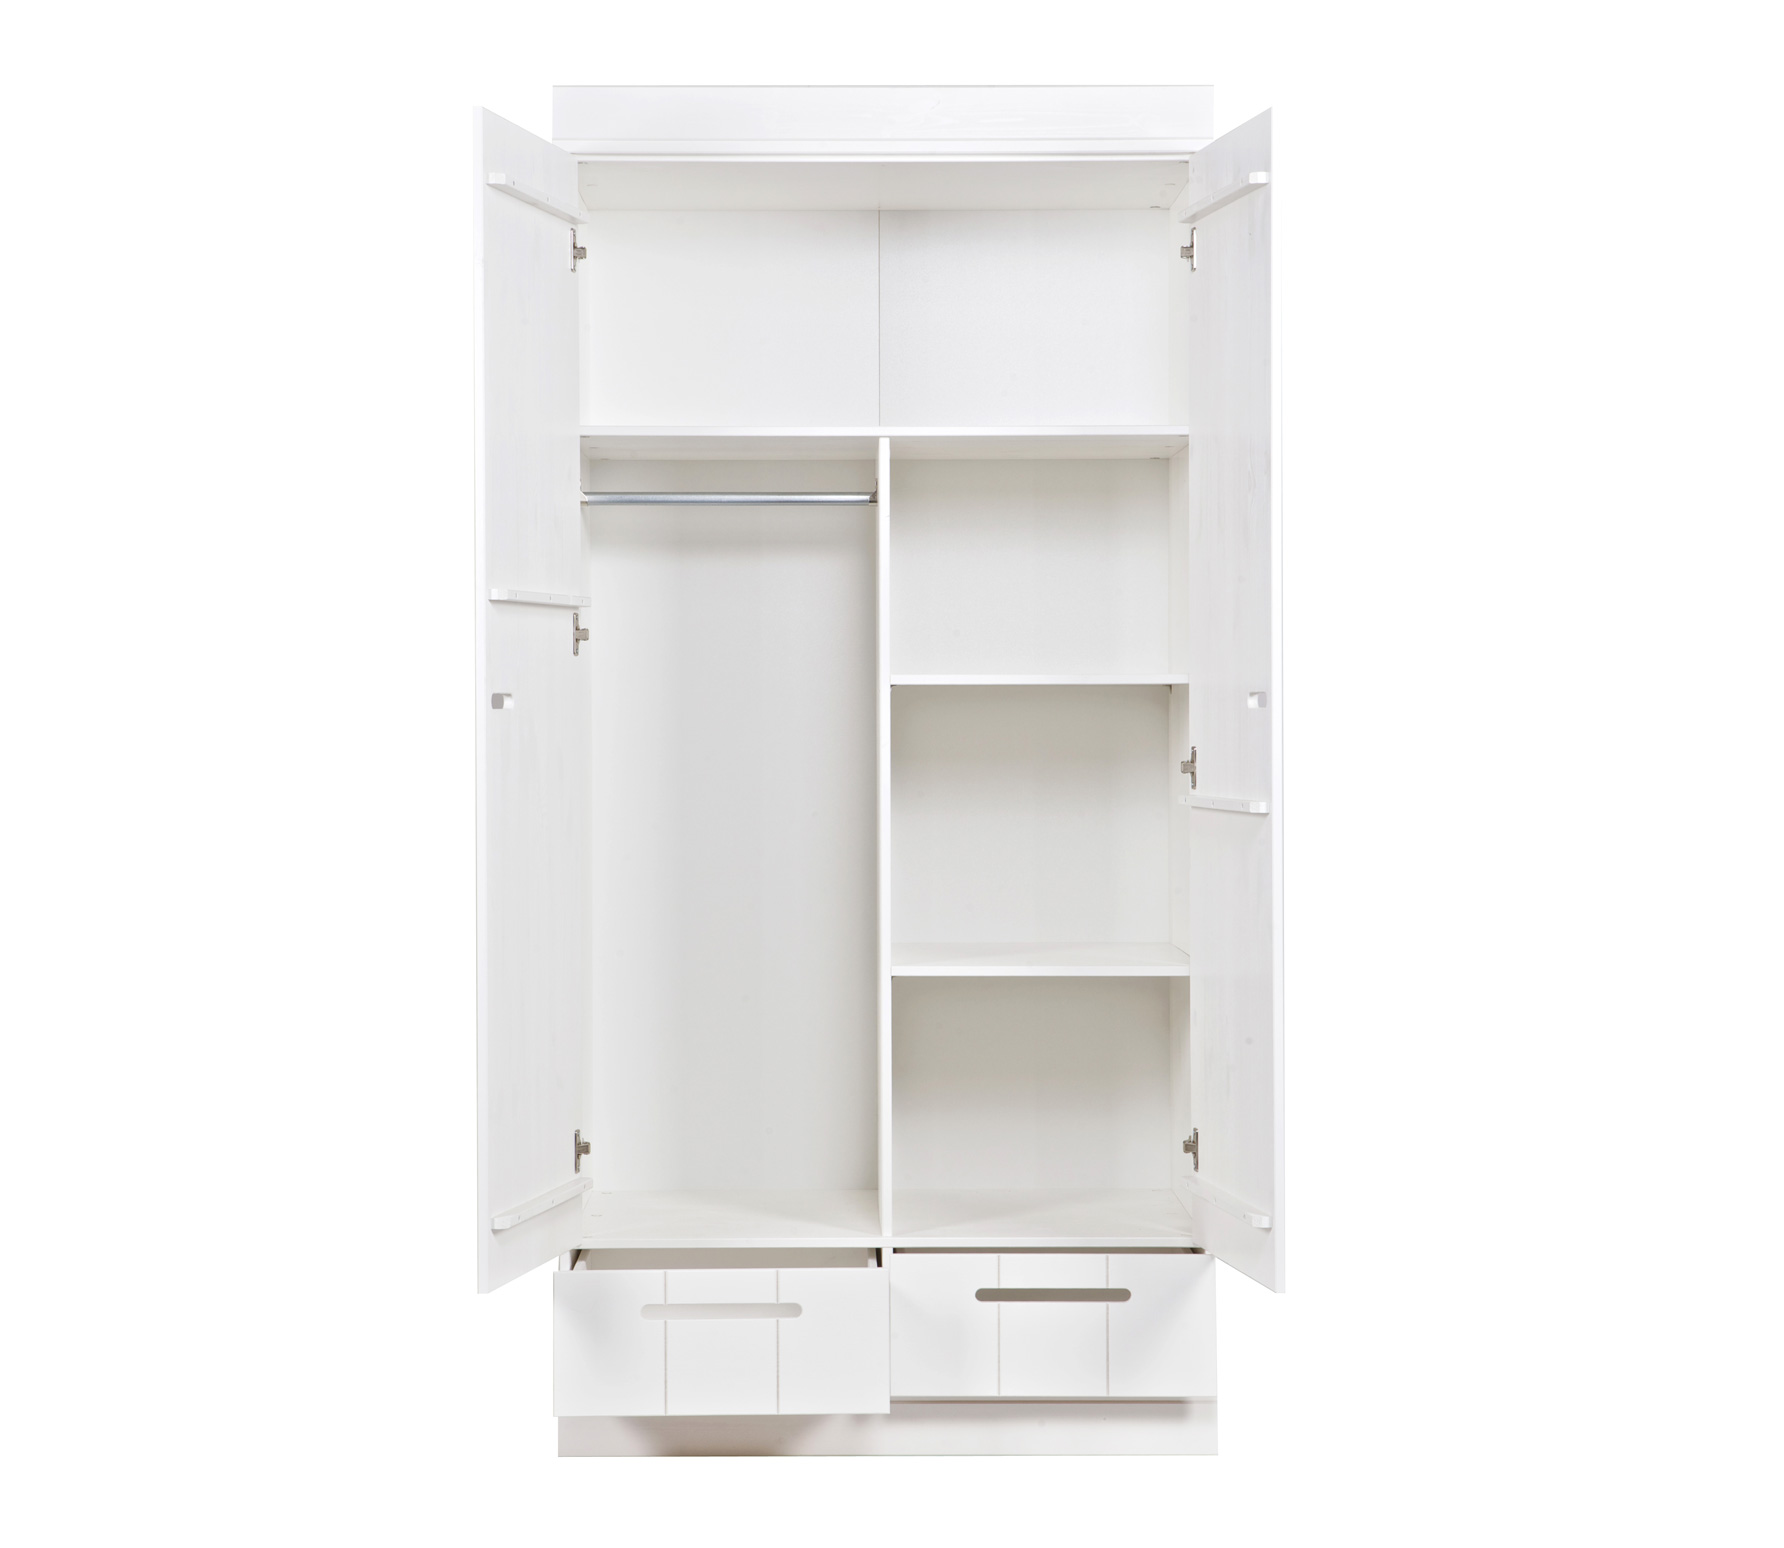 2 Door Cupboard Inside Designs Wardrobe Closet W 2 Doors 2 Shelves And 2 Interior Drawers